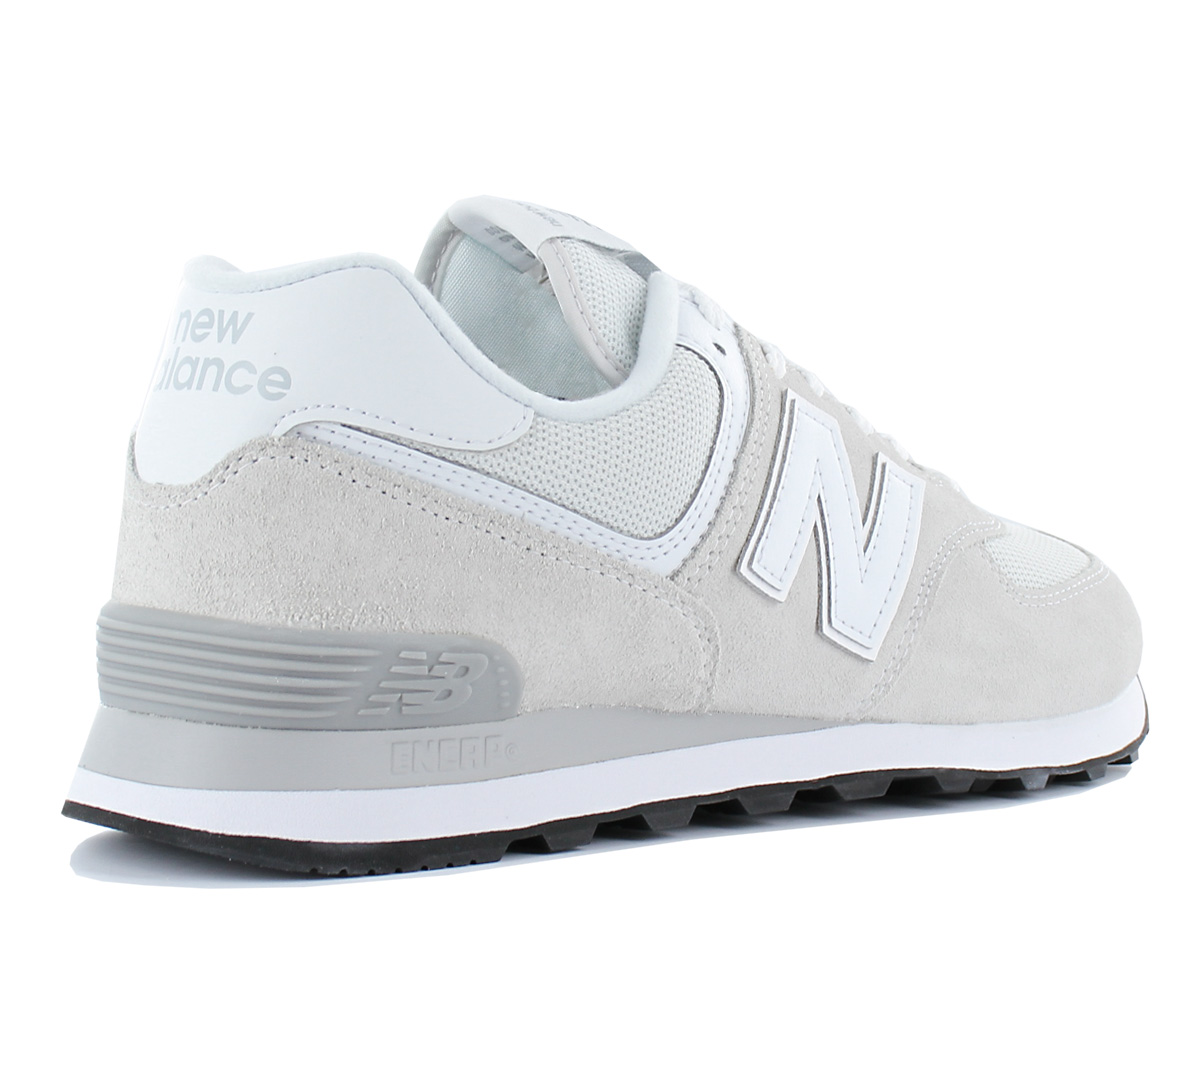 brand new 17e63 7a27b Details about NEW New Balance Classics ML574EGW Men''s Shoes Trainers  Sneakers SALE